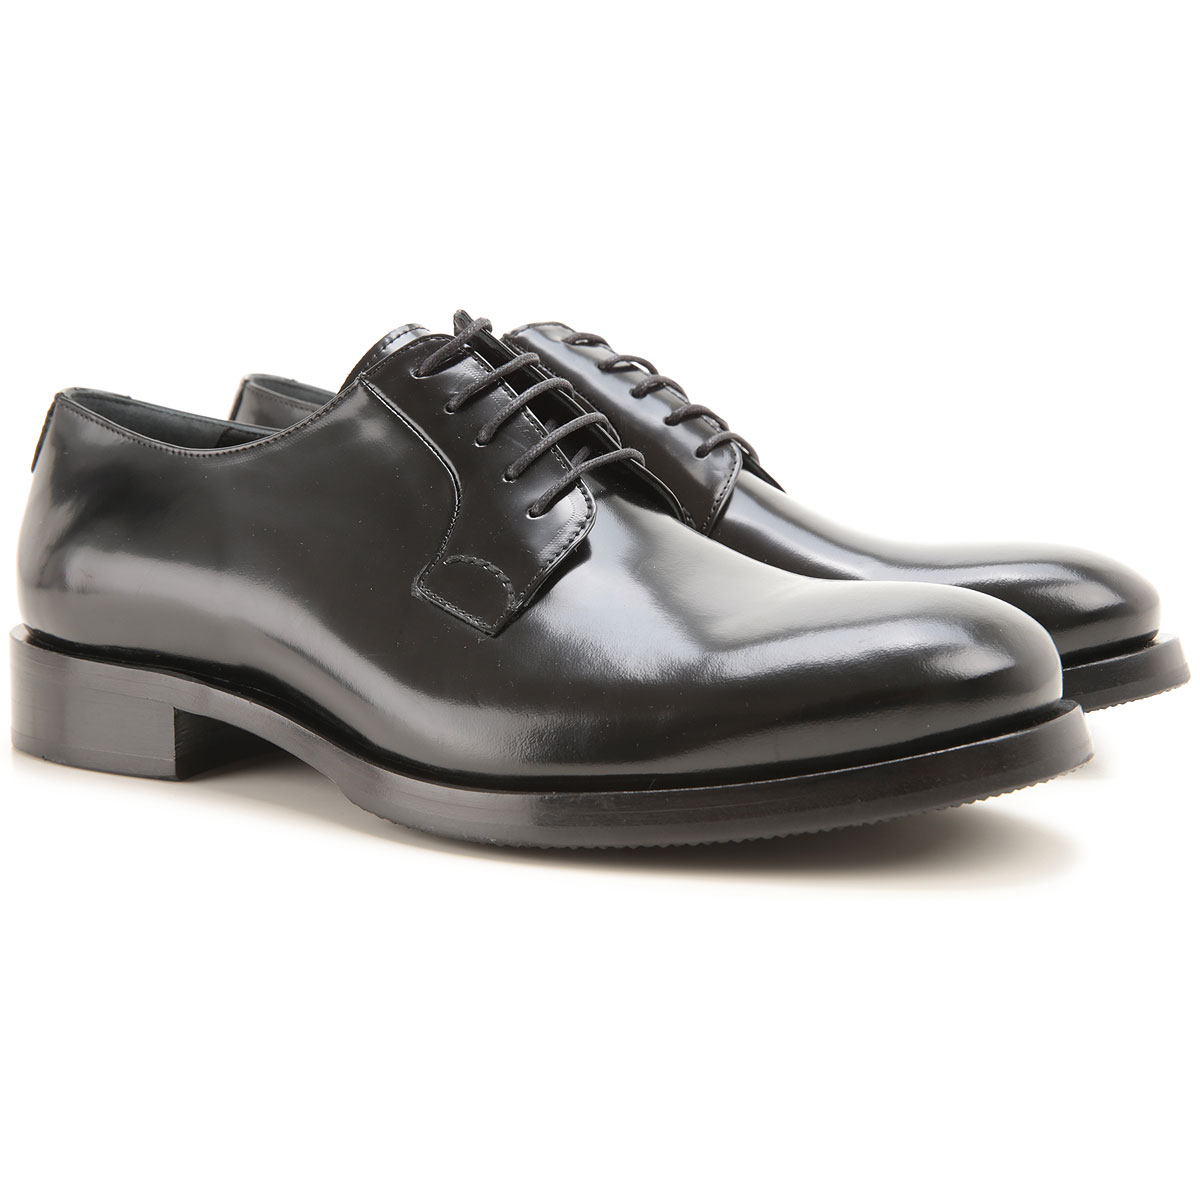 Karl Lagerfeld Lace Up Shoes for Men Oxfords Derbies and Brogues On Sale USA - GOOFASH